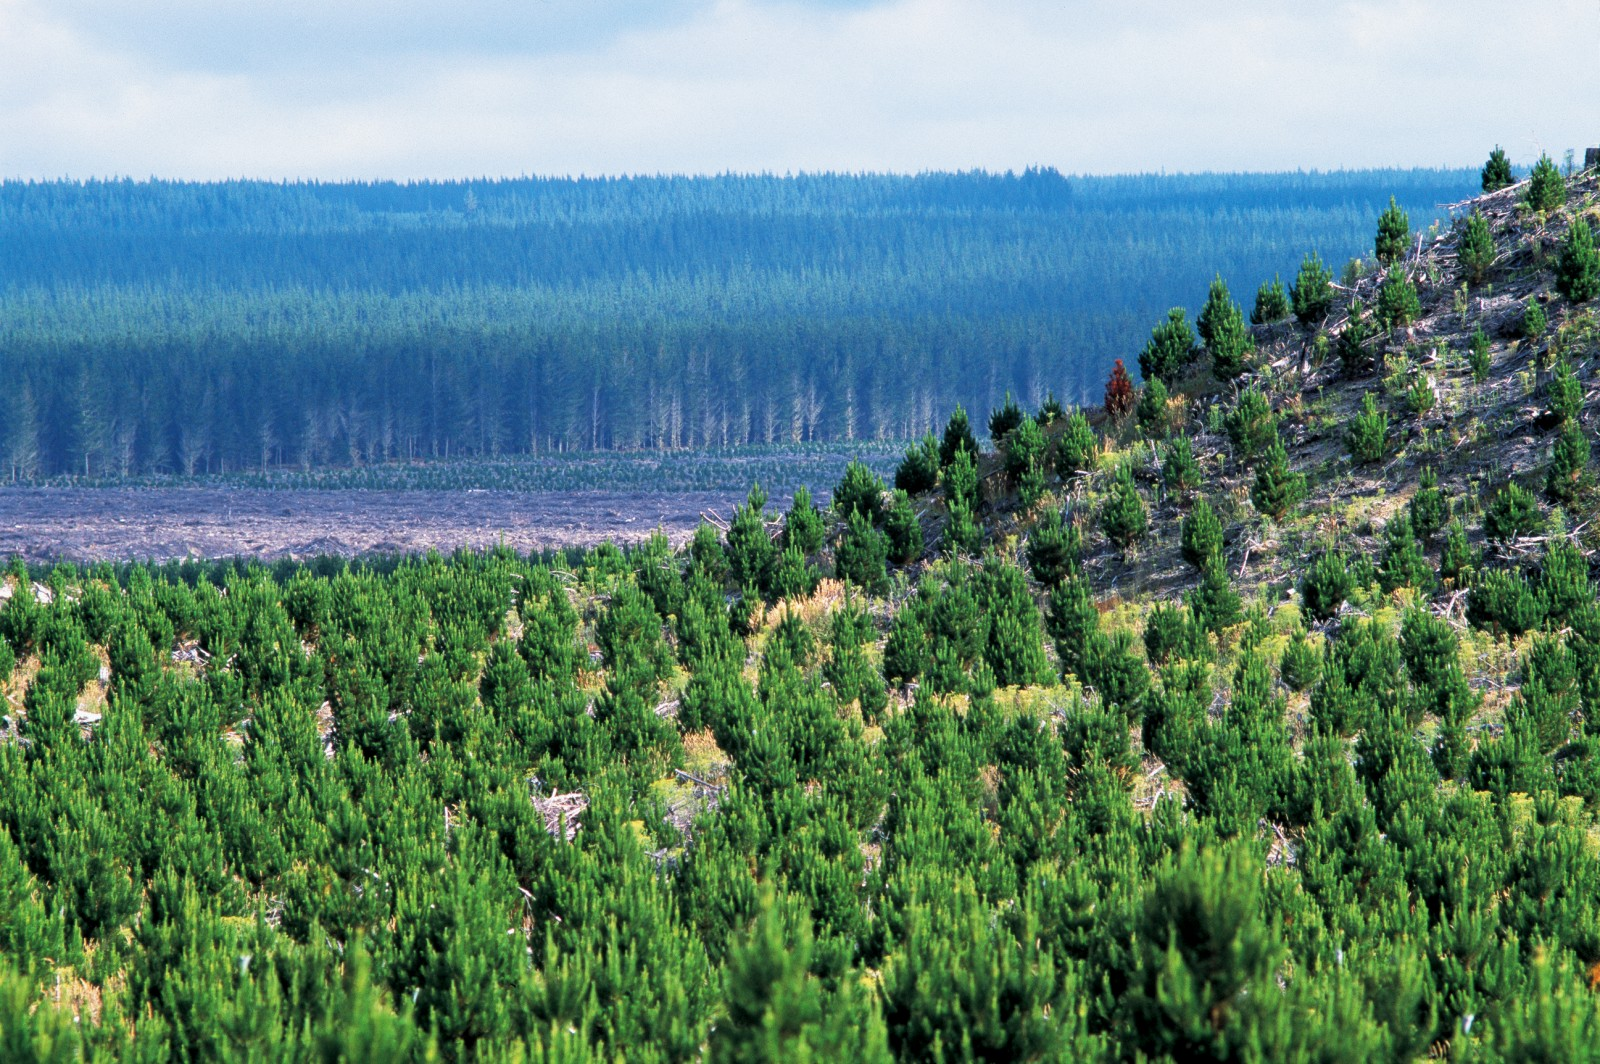 About a quarter of New Zealand's forests consist of exotic plantations, 90 per cent of them radiata pine. On the pumice lands of the central volcanic plateau, Kaingaroa Forest (seen here) covers hundreds of kilometres--a vast resource for the myriad native plants and animals that have taken up residence within it.